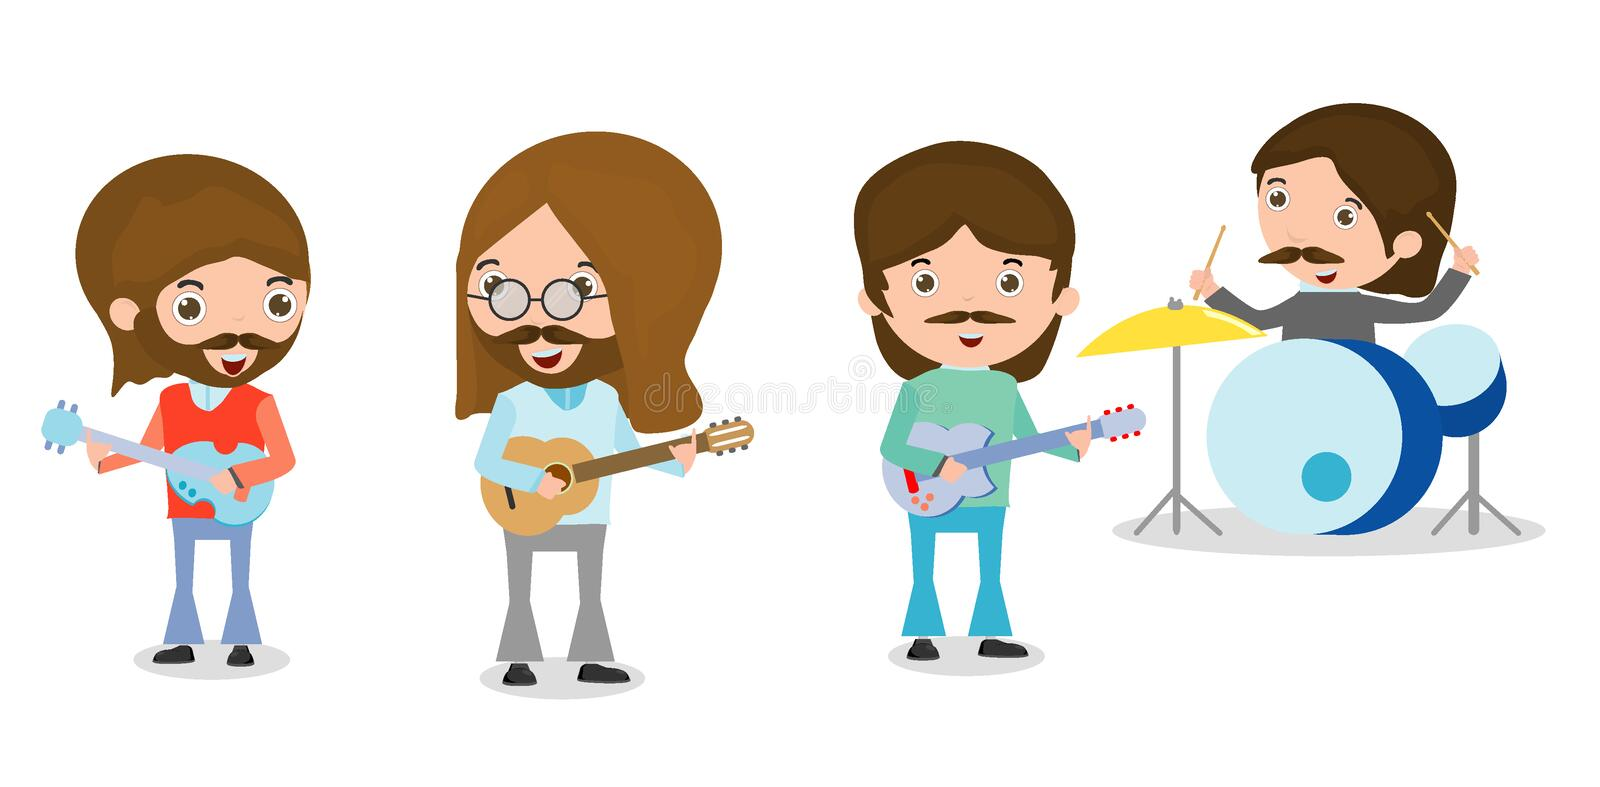 Four people in a music band on white background, Person playing Musical Instruments,illustration of young playing different. Vector illustration of four people royalty free illustration